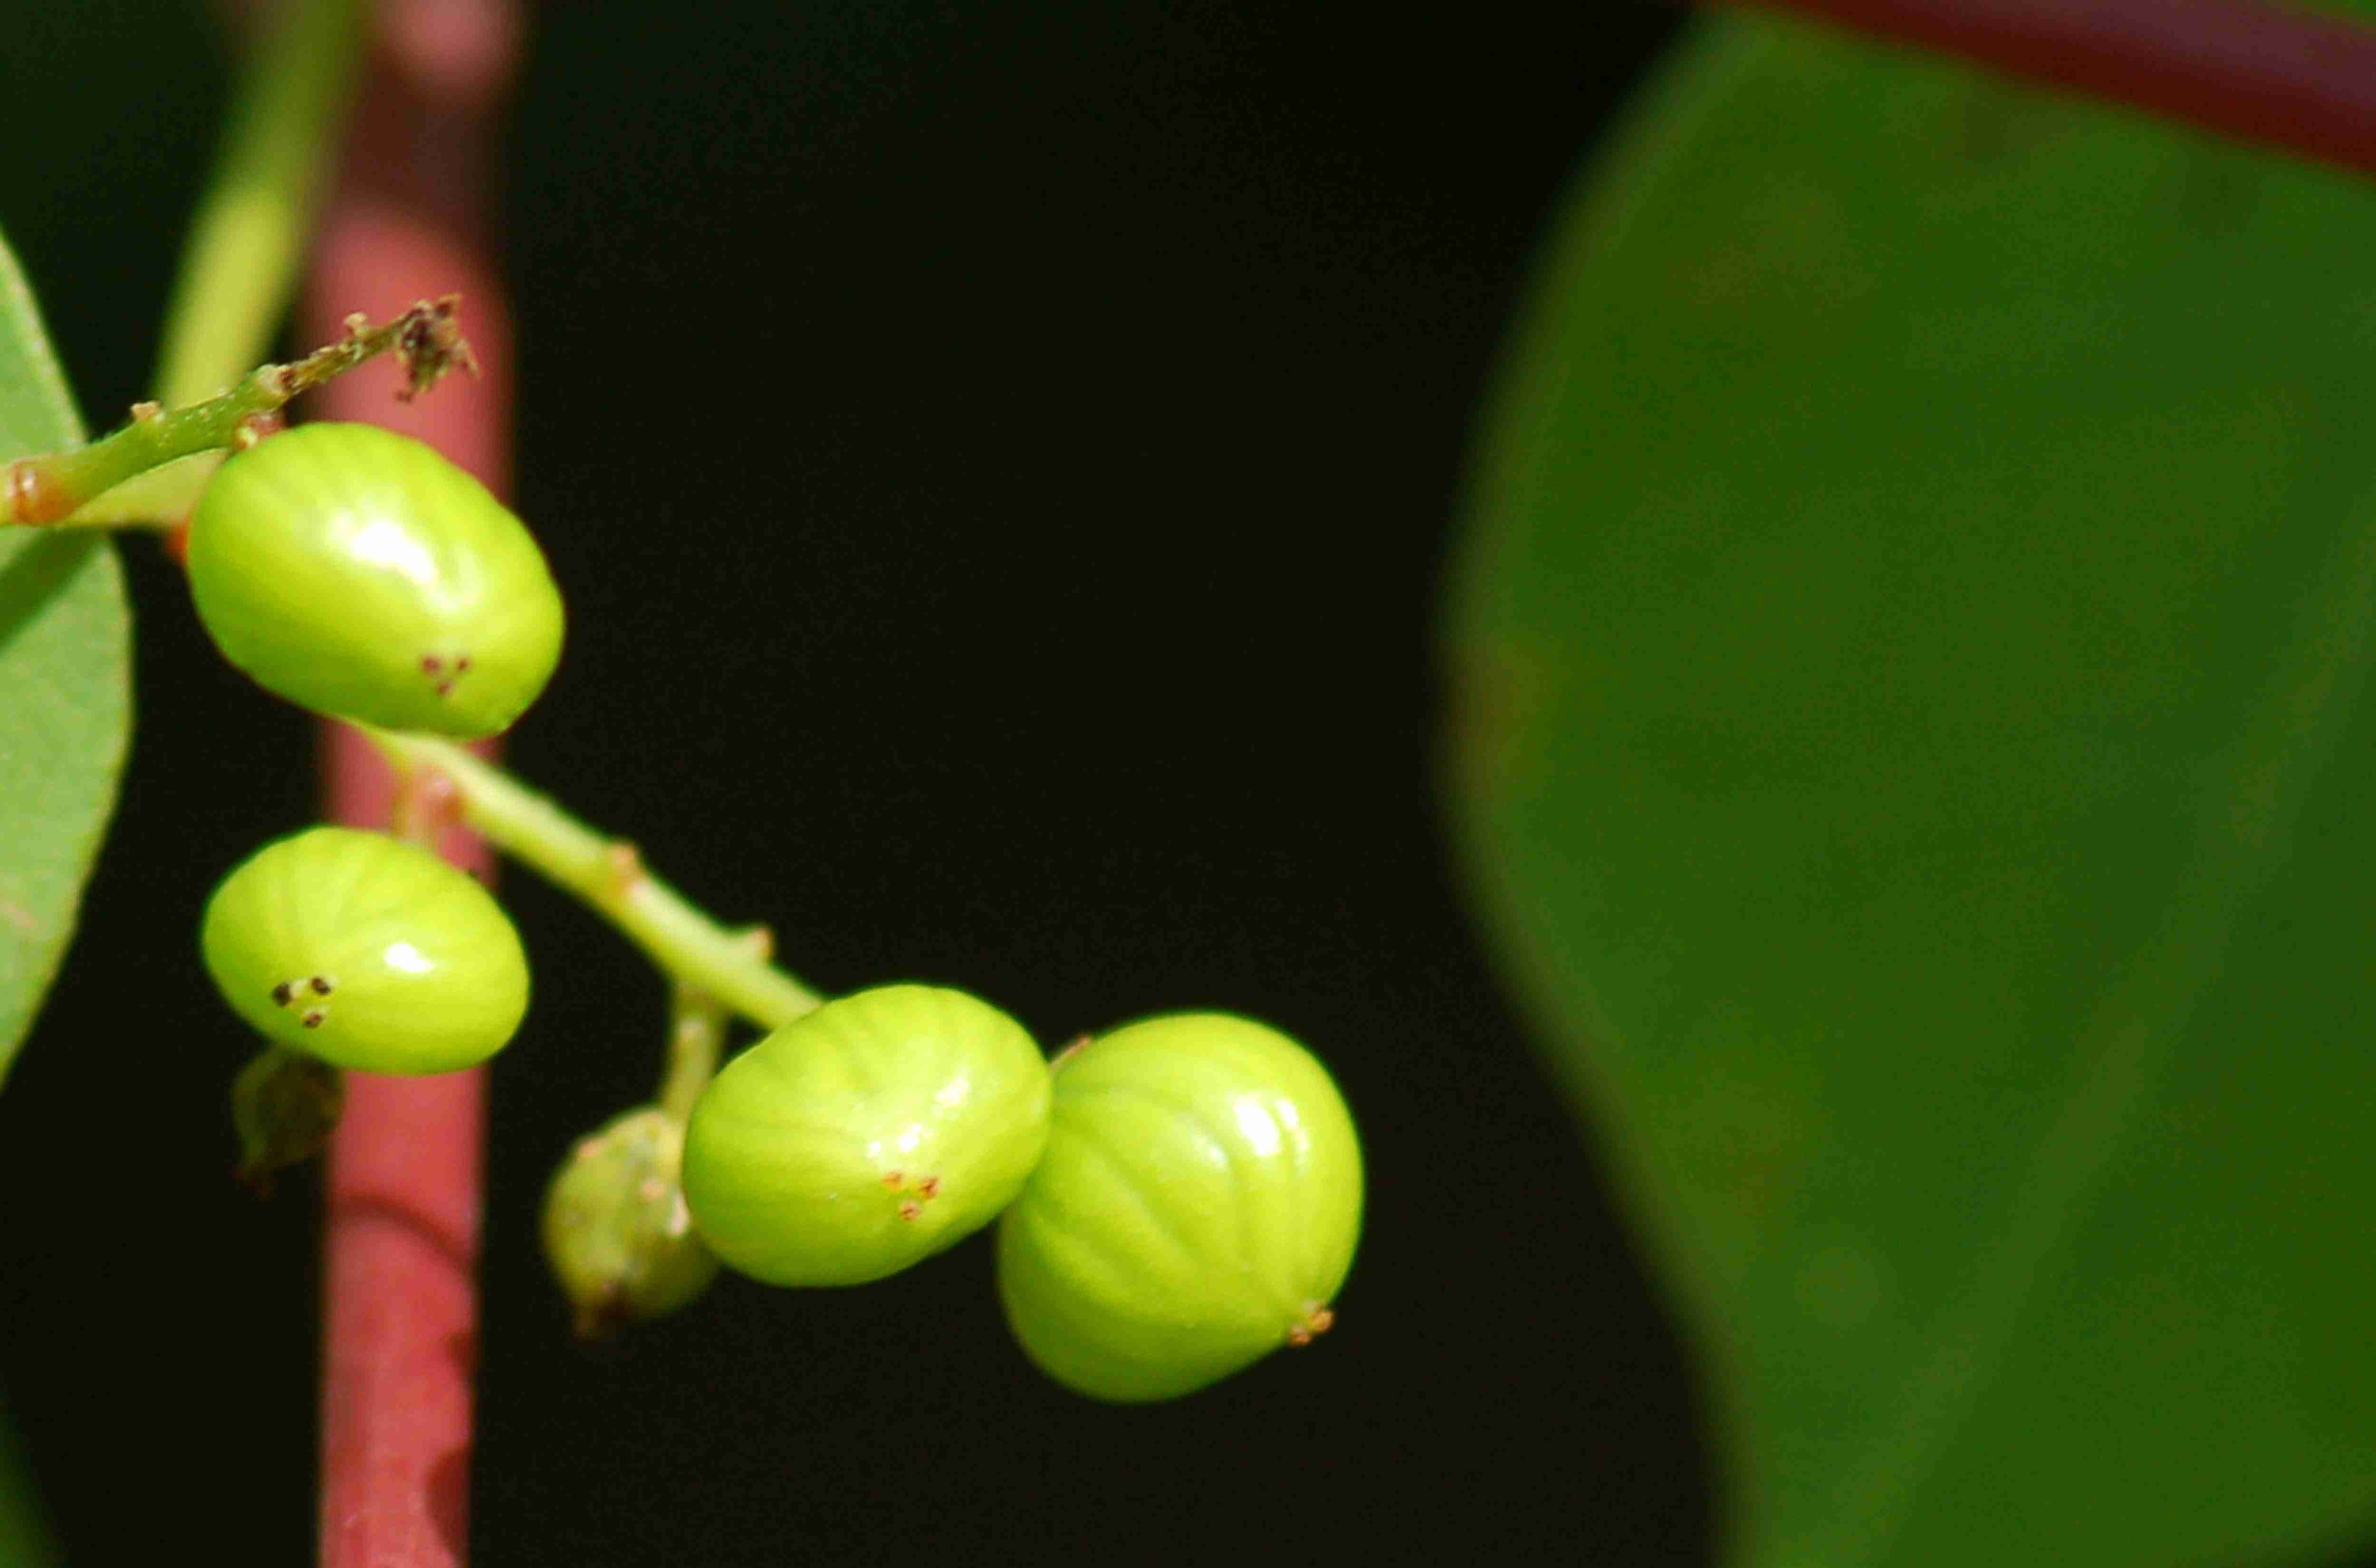 The oddly-shaped berries of poison sumac.